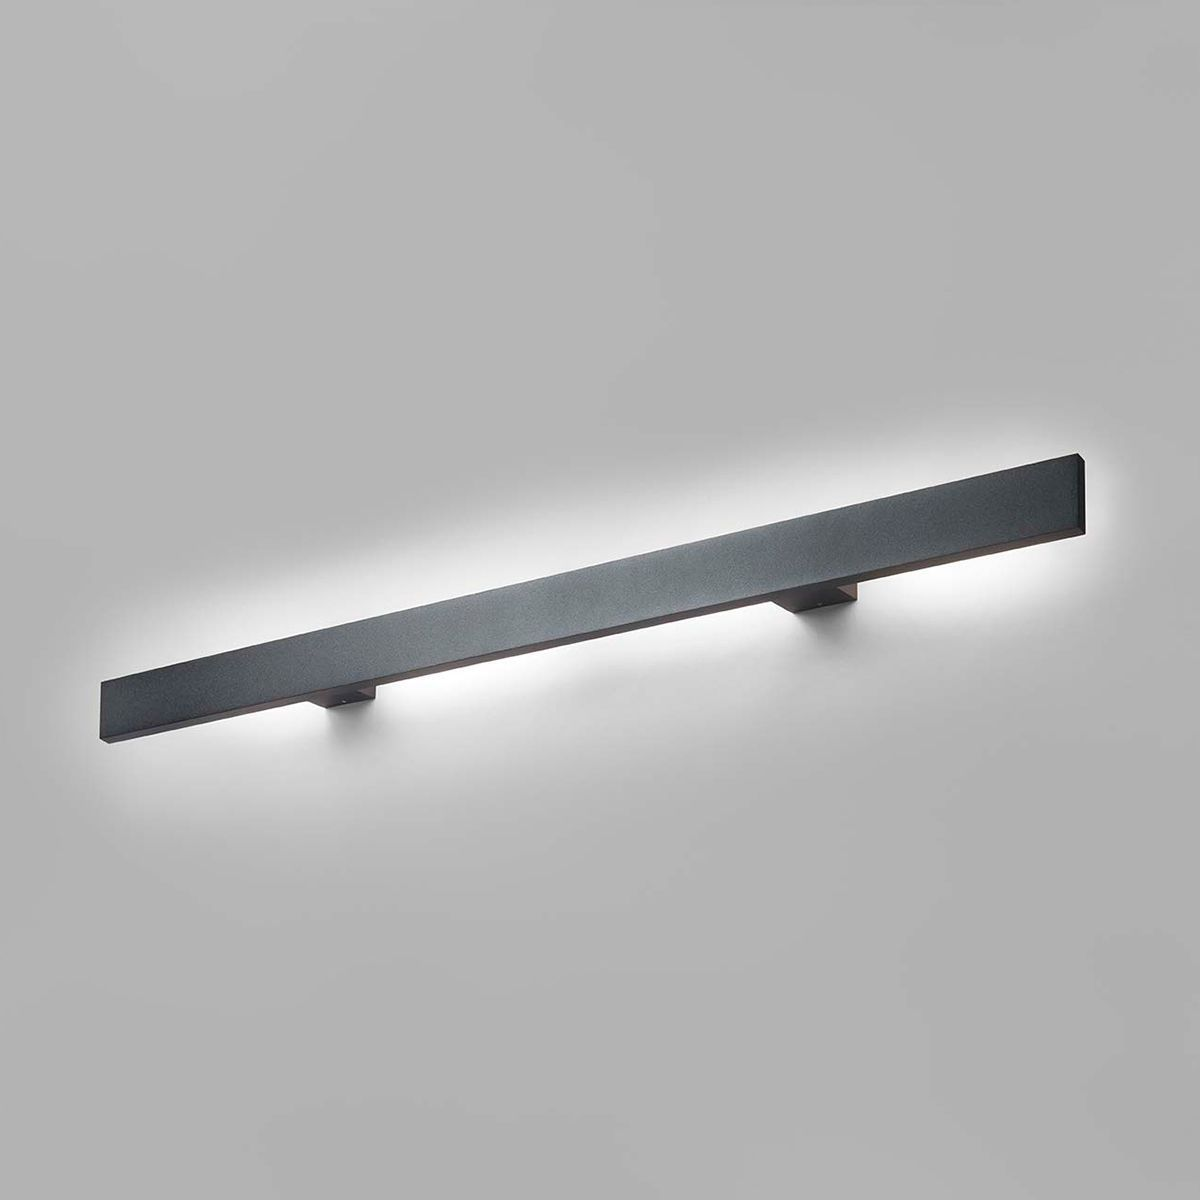 Stick On Wall Lamp Contemporary Wall Light Aluminum Led Linear Stick By Ronni